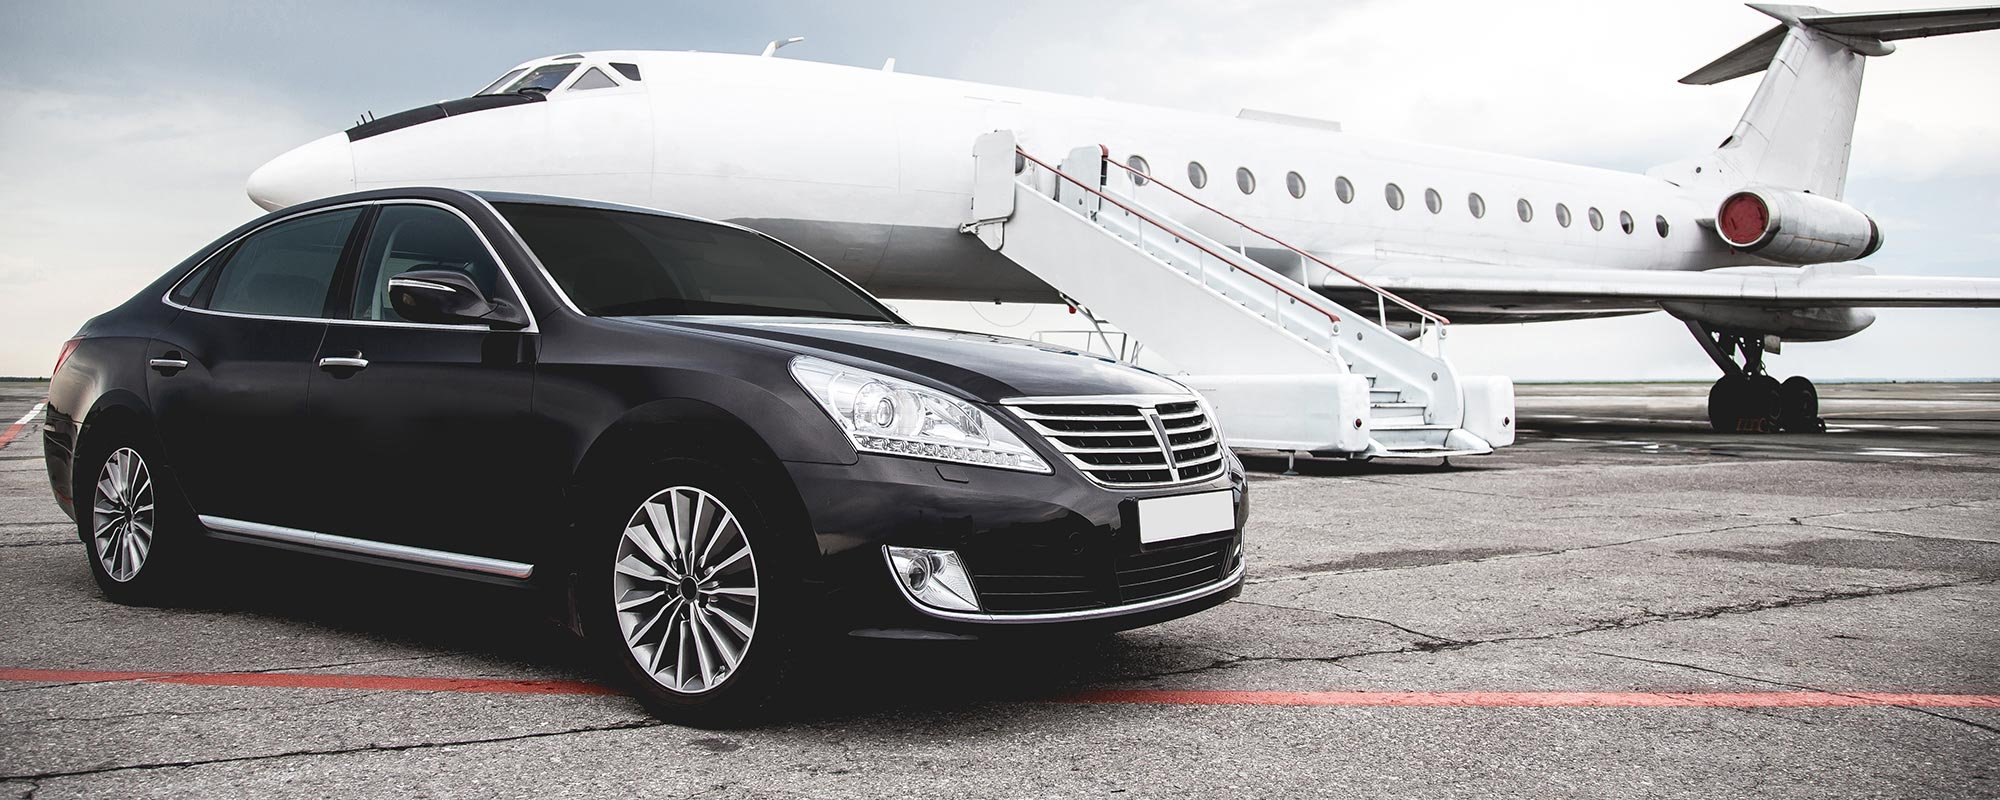 Guide To Travel In A Birmingham Airport Taxi